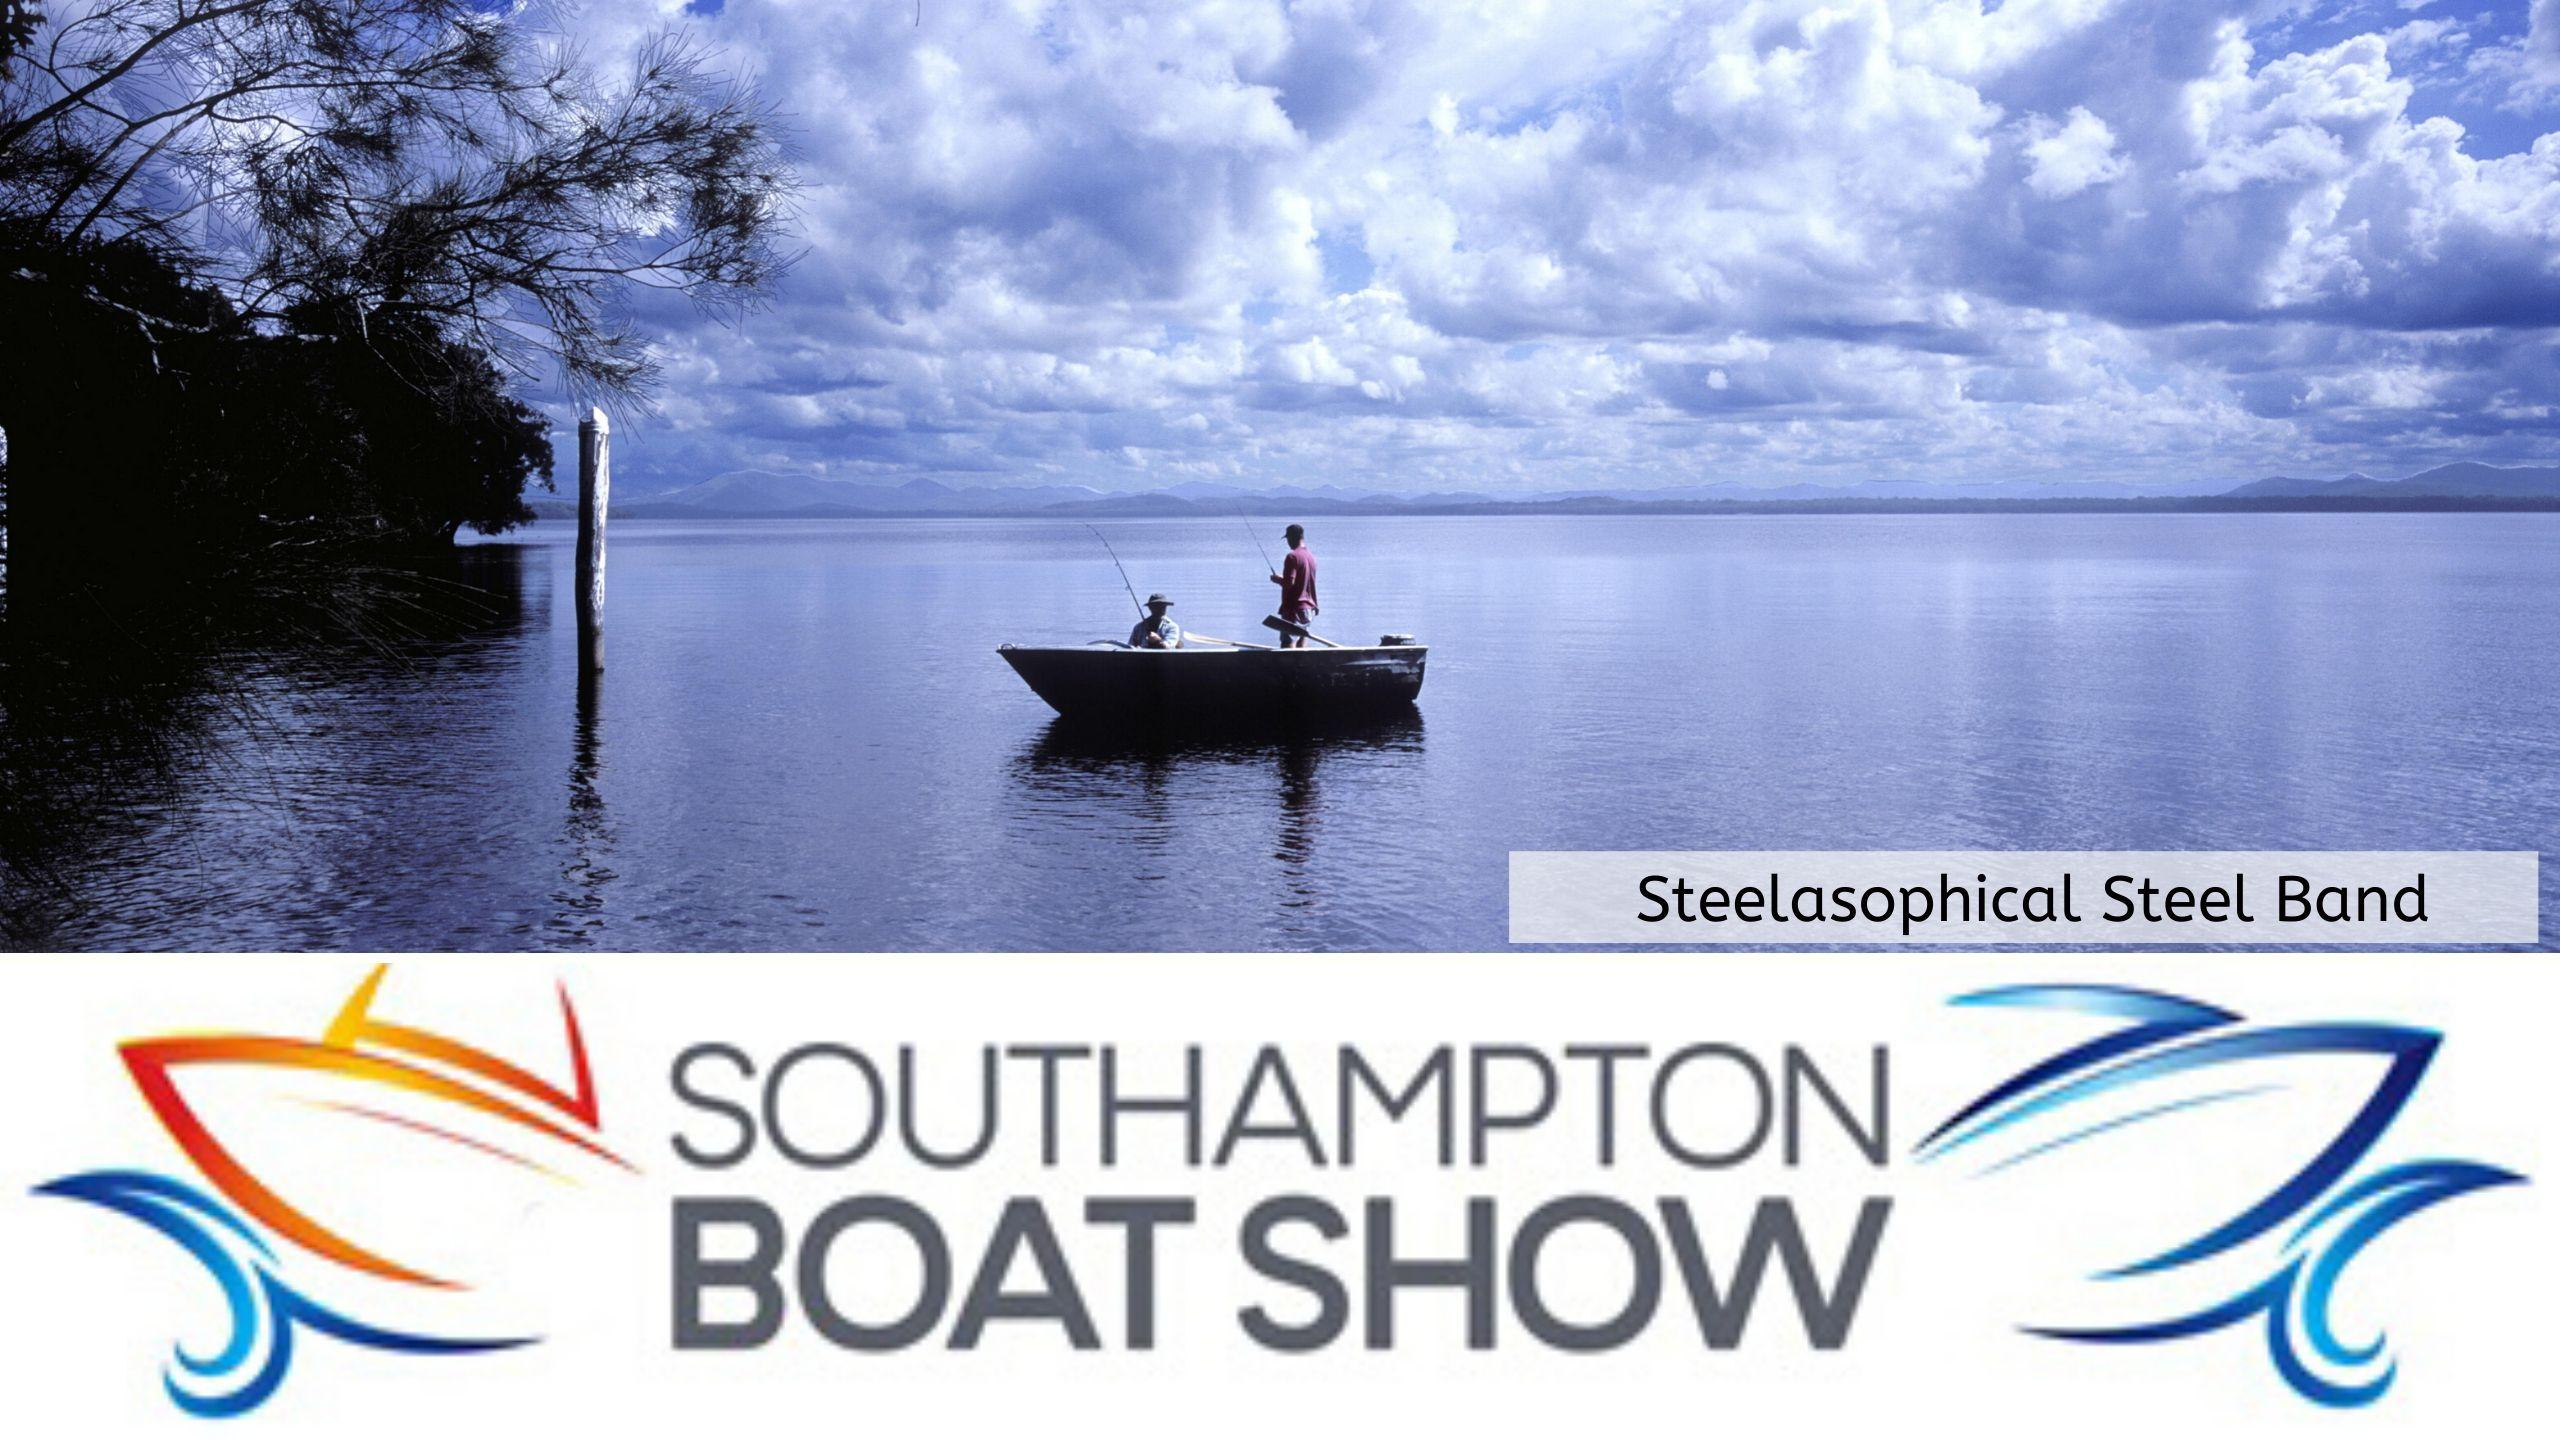 Steelasophical Steel Band Southampton Boat Show Yacht Market dt3t